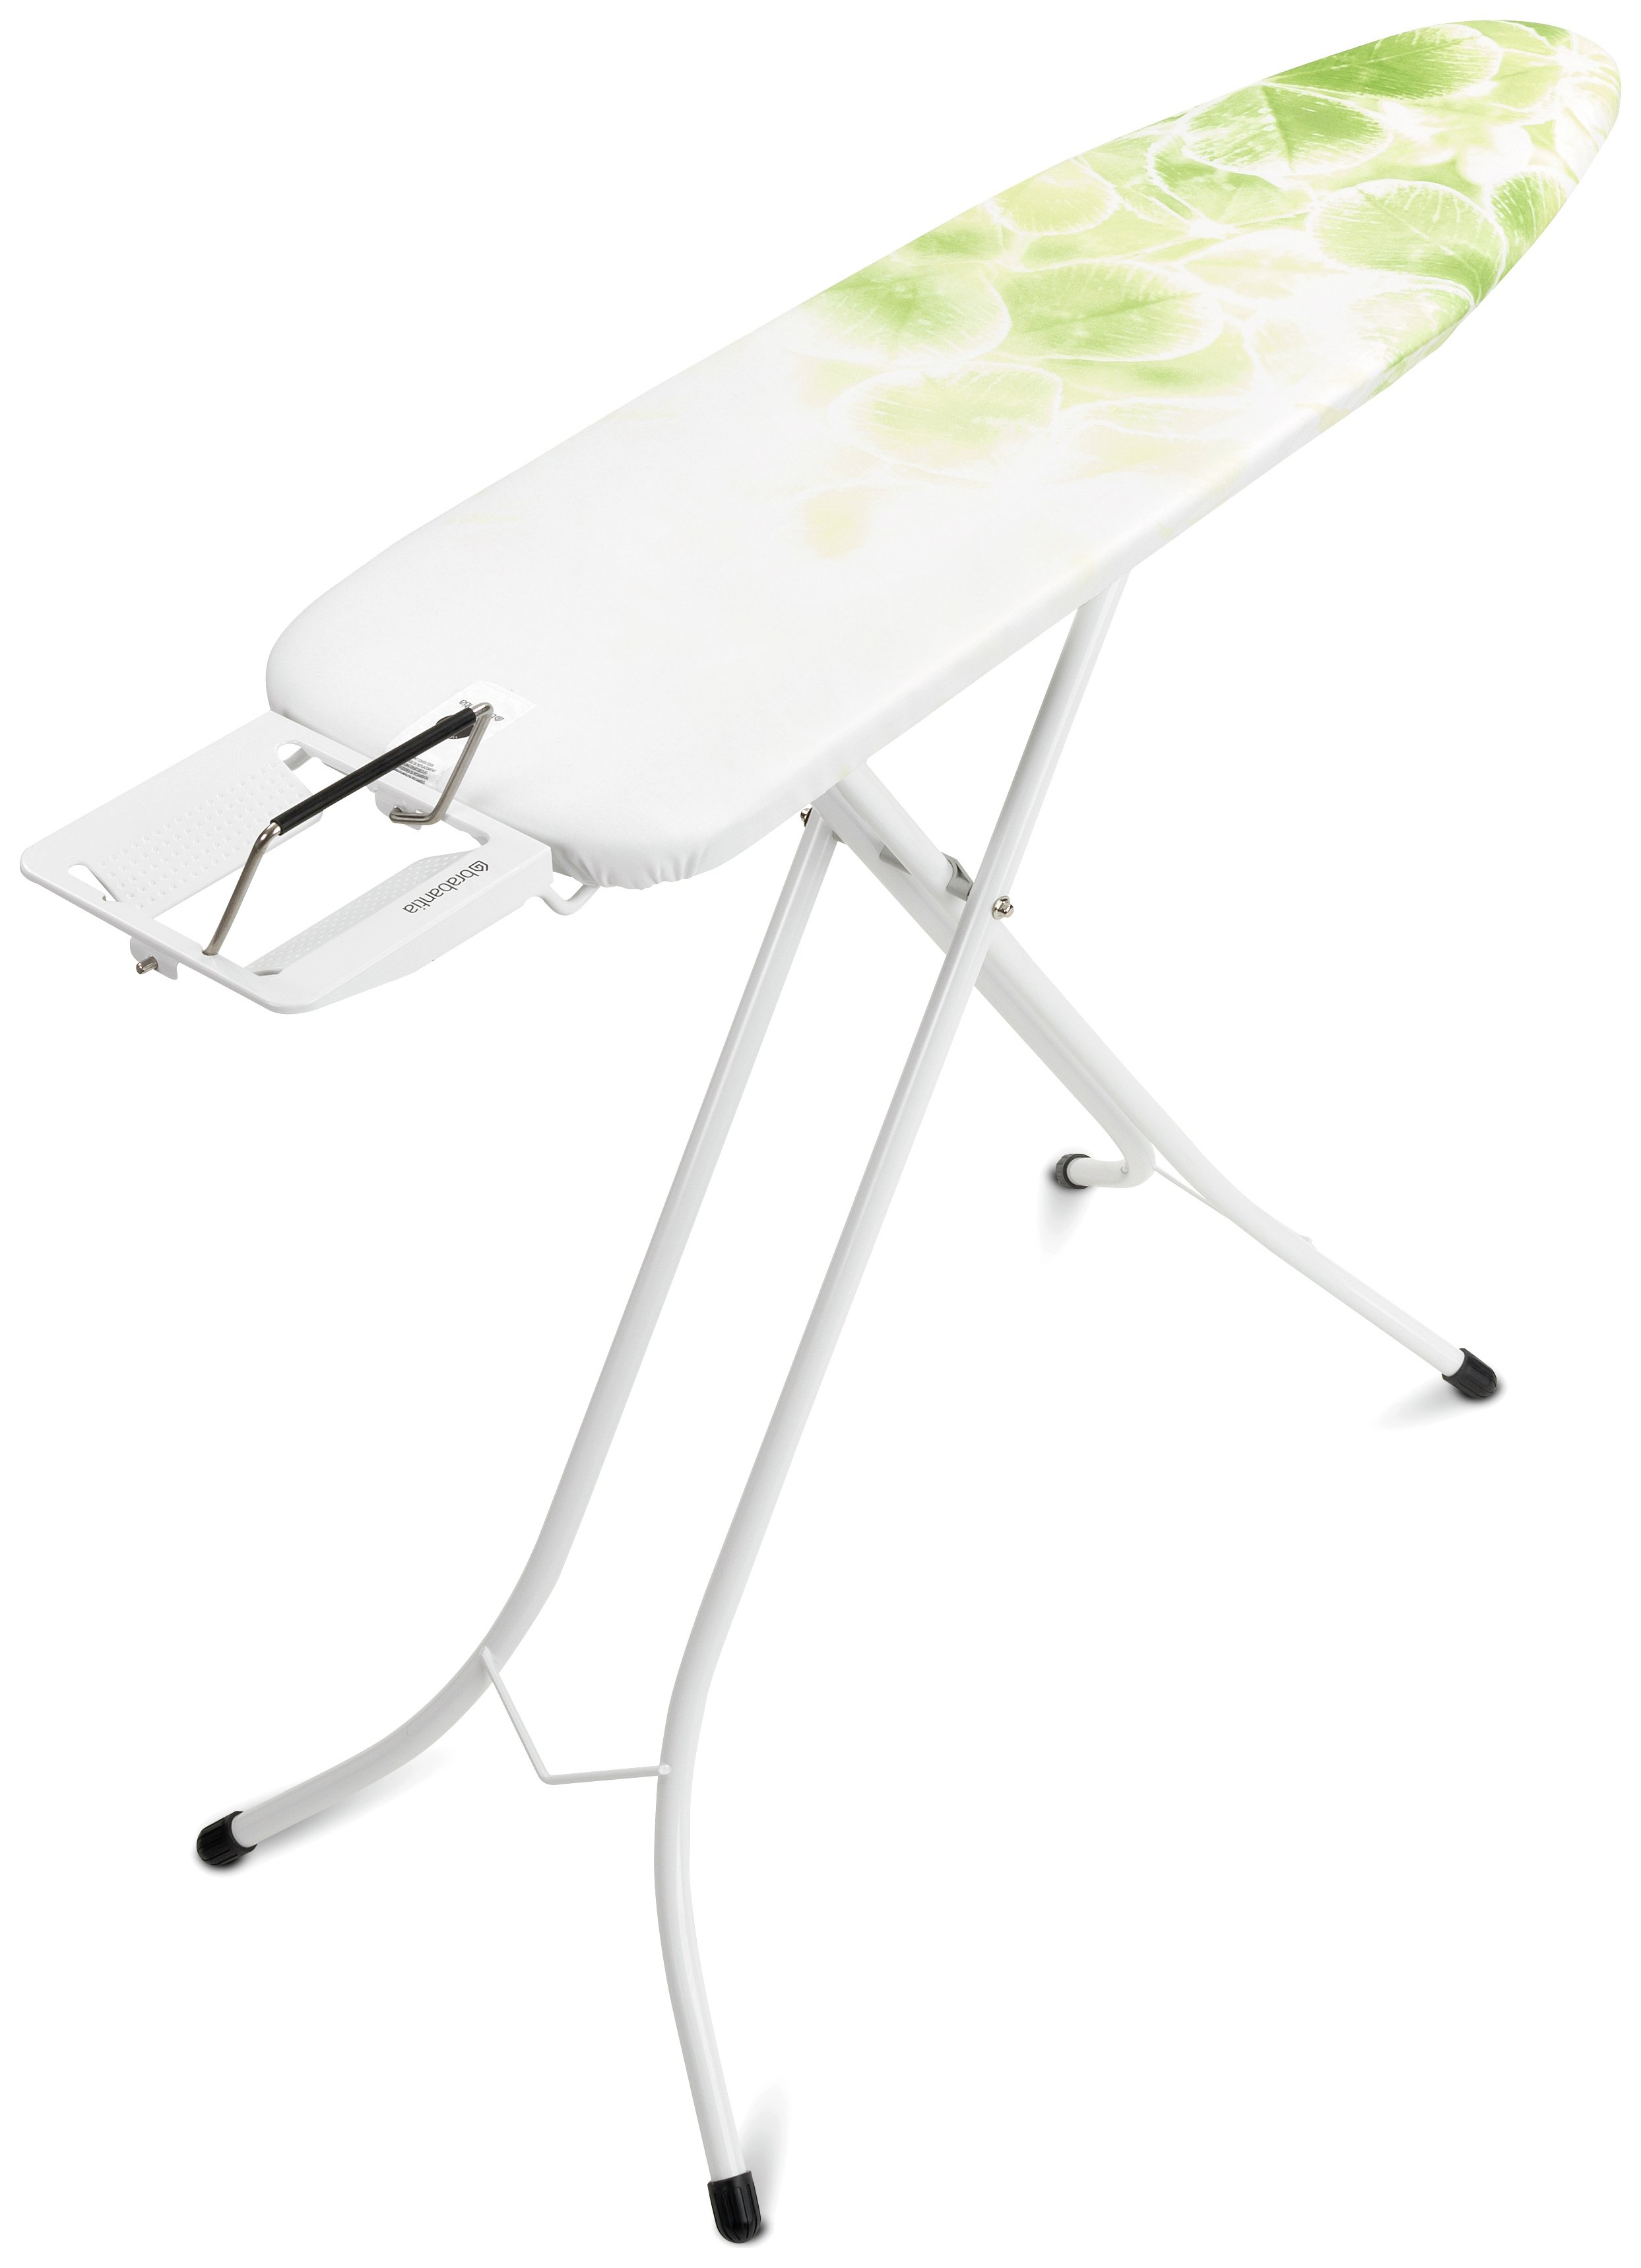 Image of Brabantia 110 x 30cm Ironing Board - Leaf Cotton.